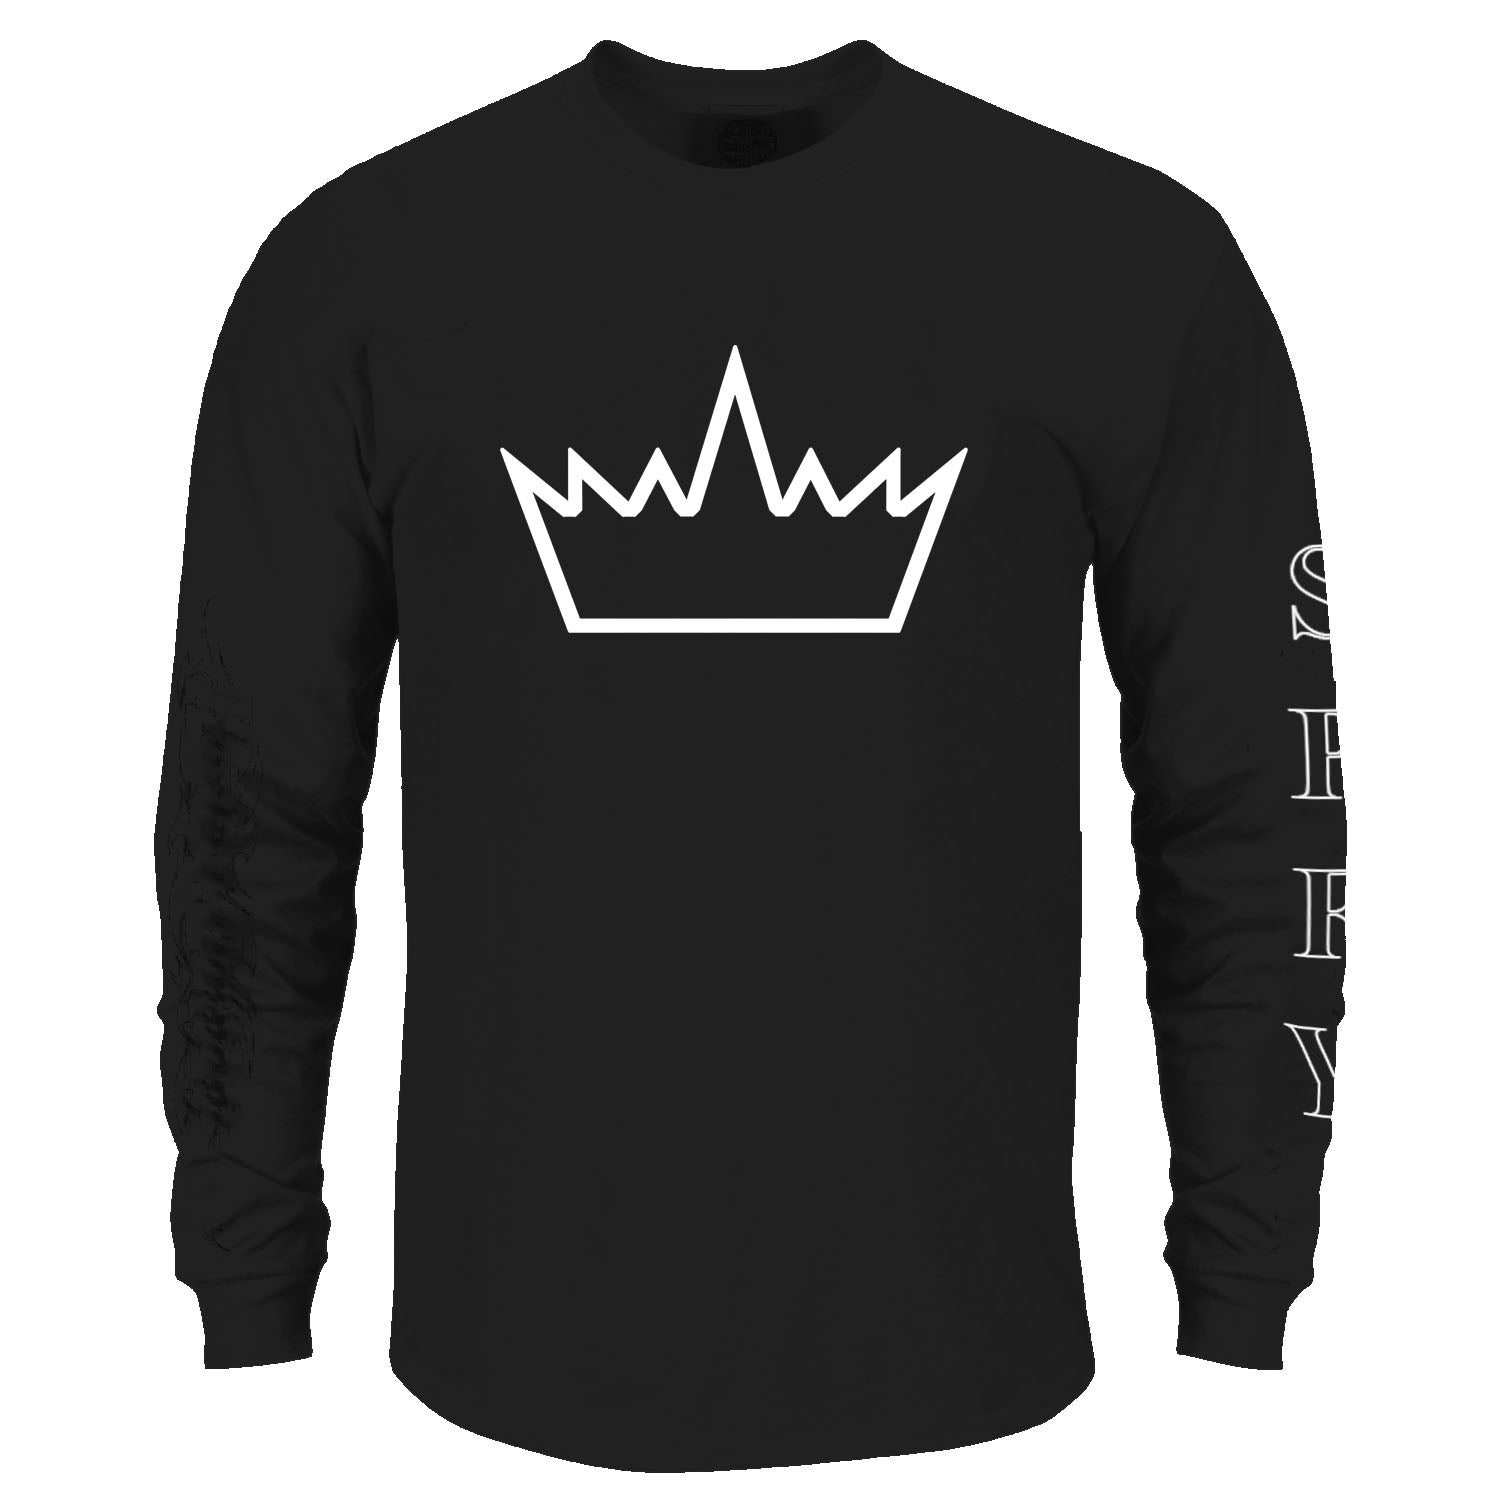 Crown Me Long Sleeve Shirt